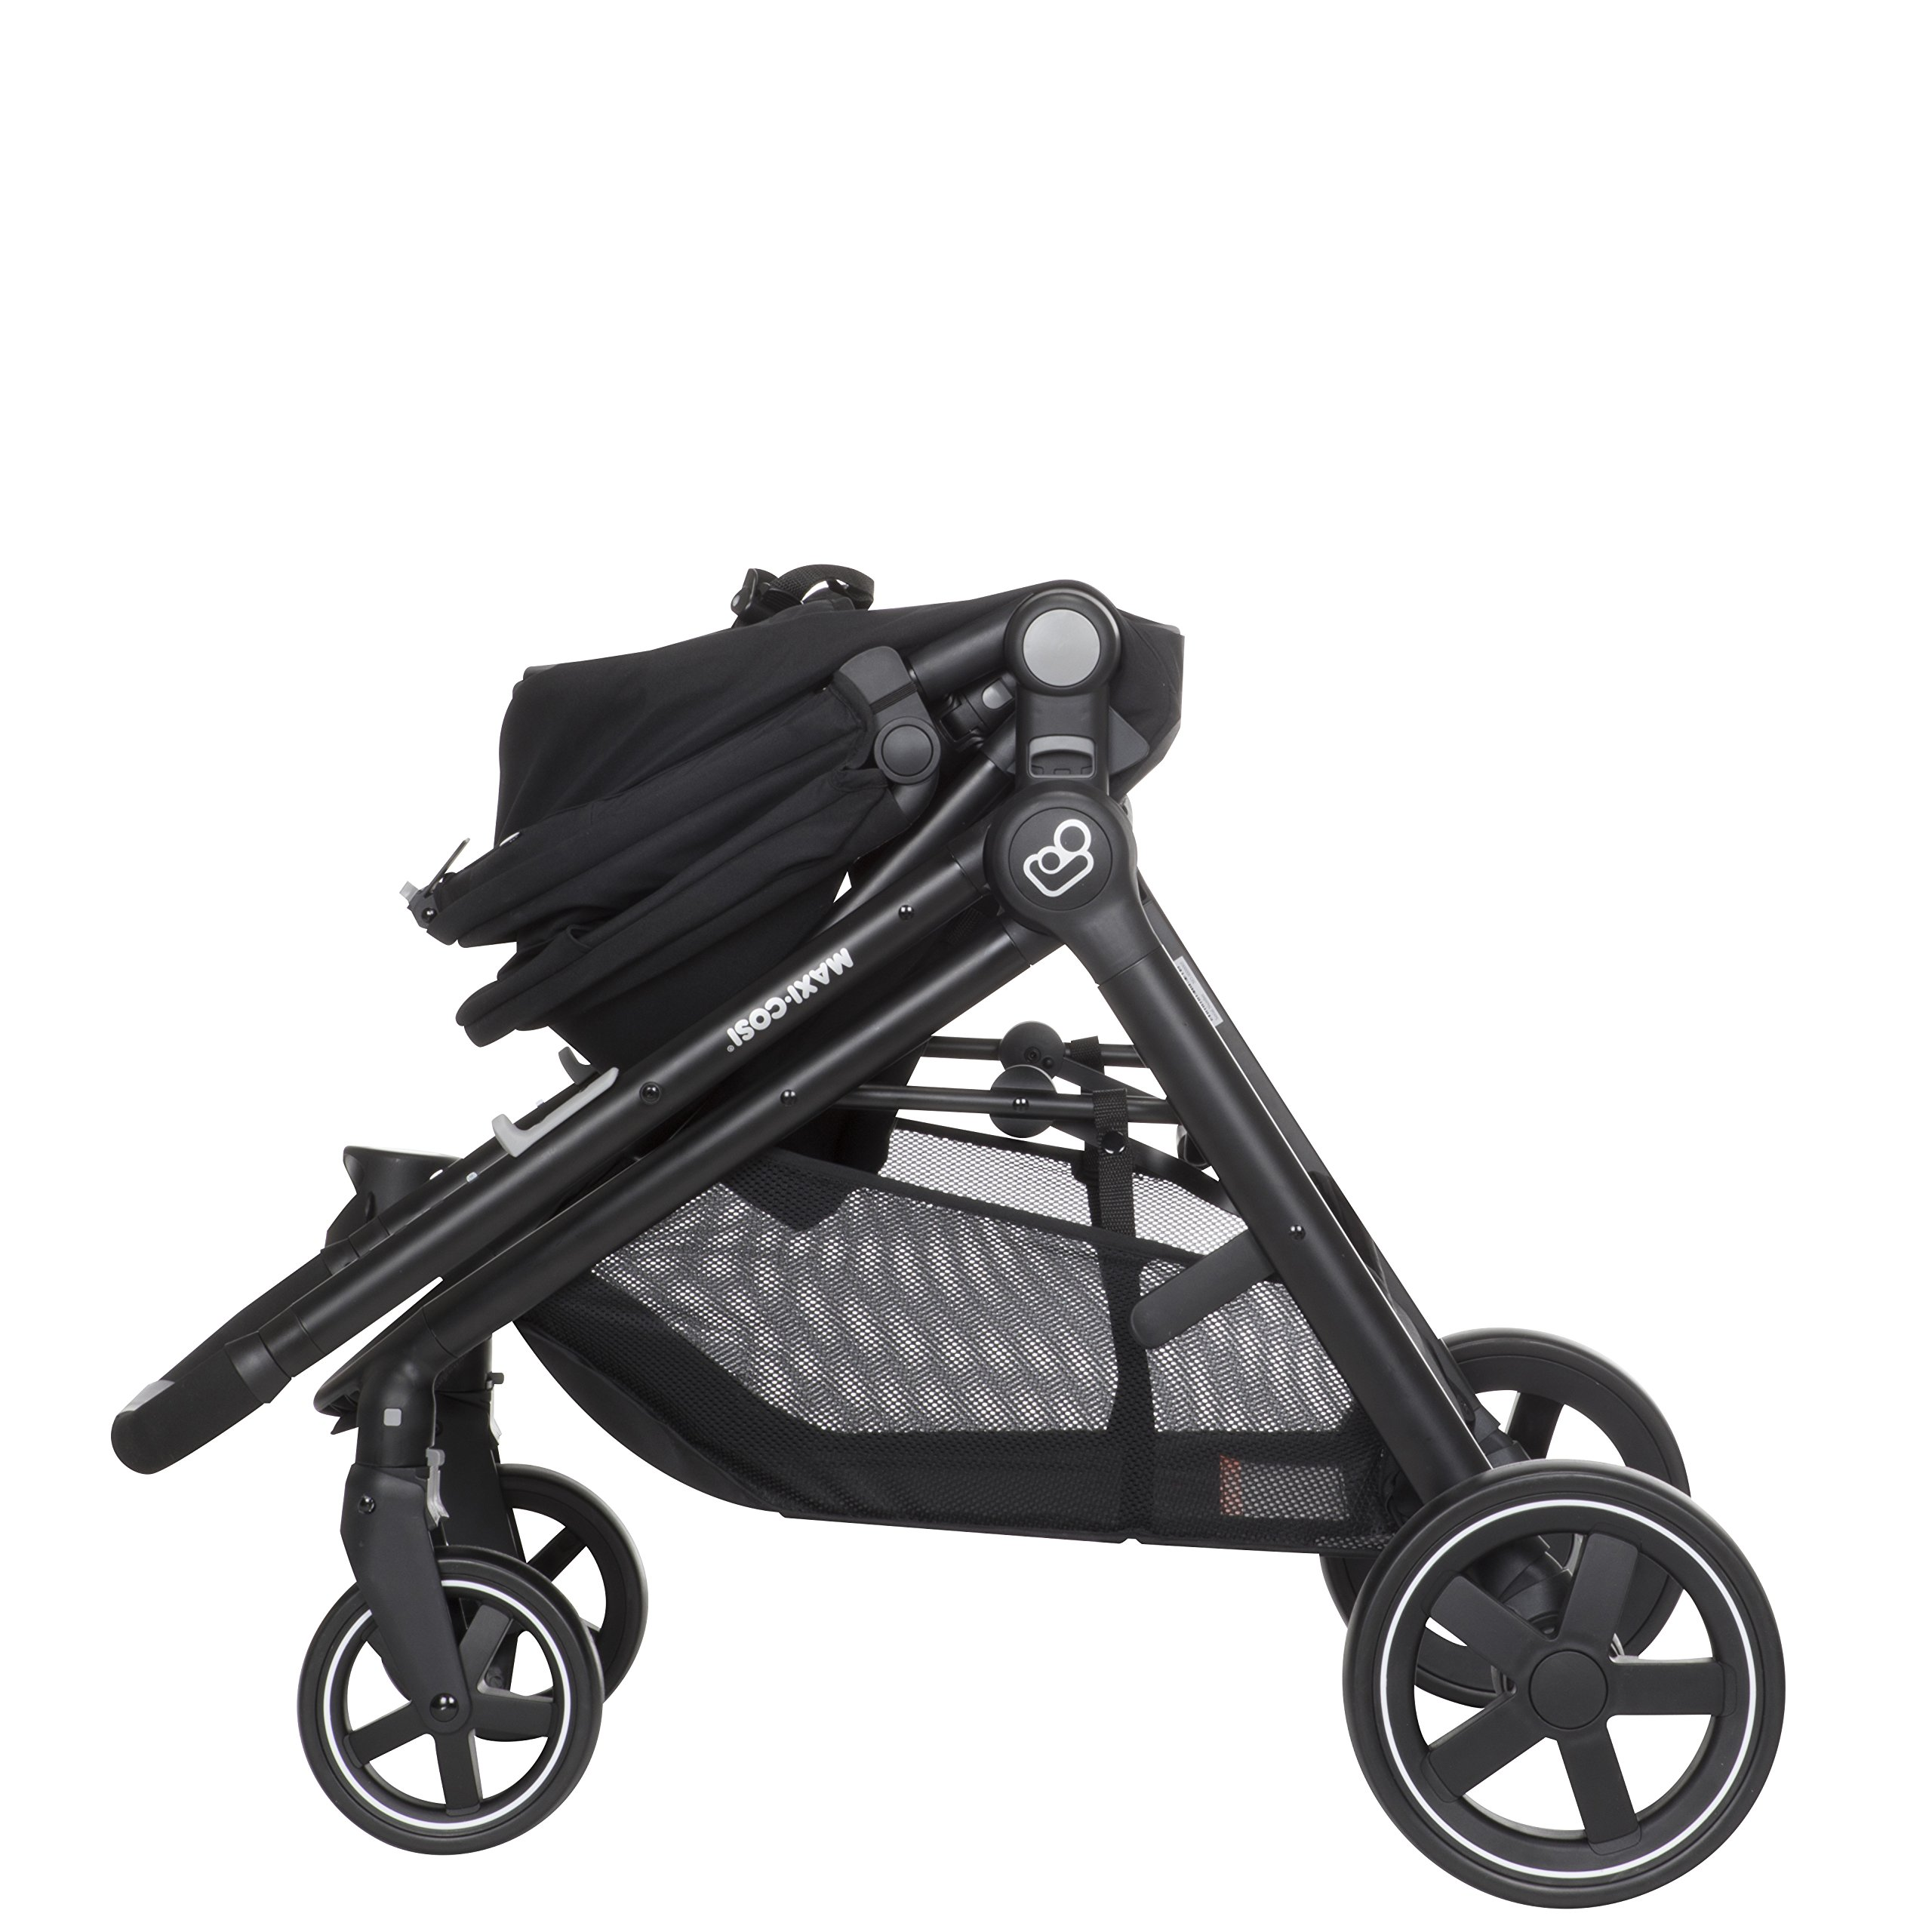 Maxi-Cosi Zelia 5-in-1 Modular Travel System Stroller and Mico 30 Infant Car Seat Set (Night Black) by Maxi-Cosi (Image #13)